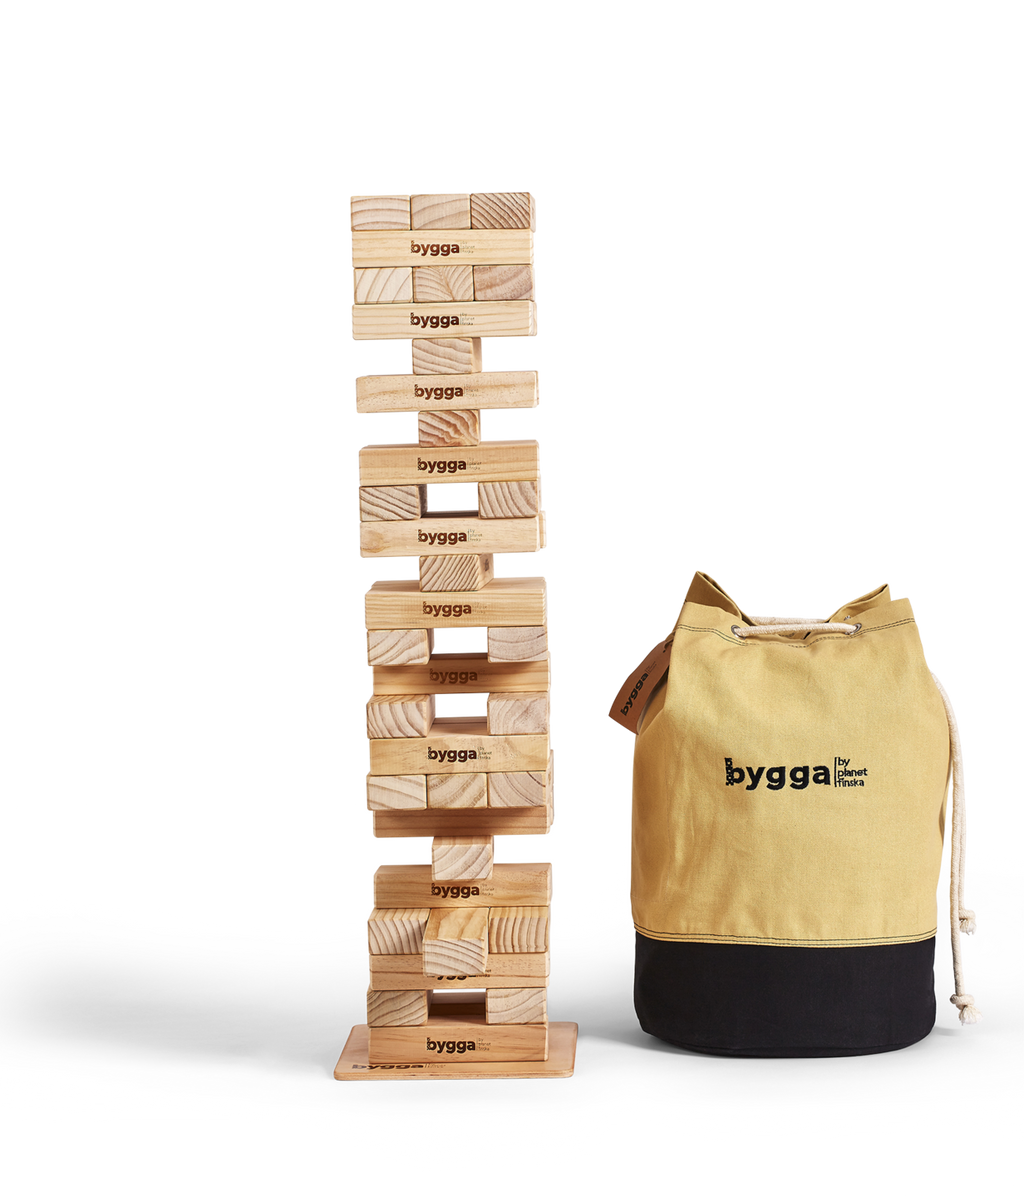 Bygga Tower (Giant Jenga)